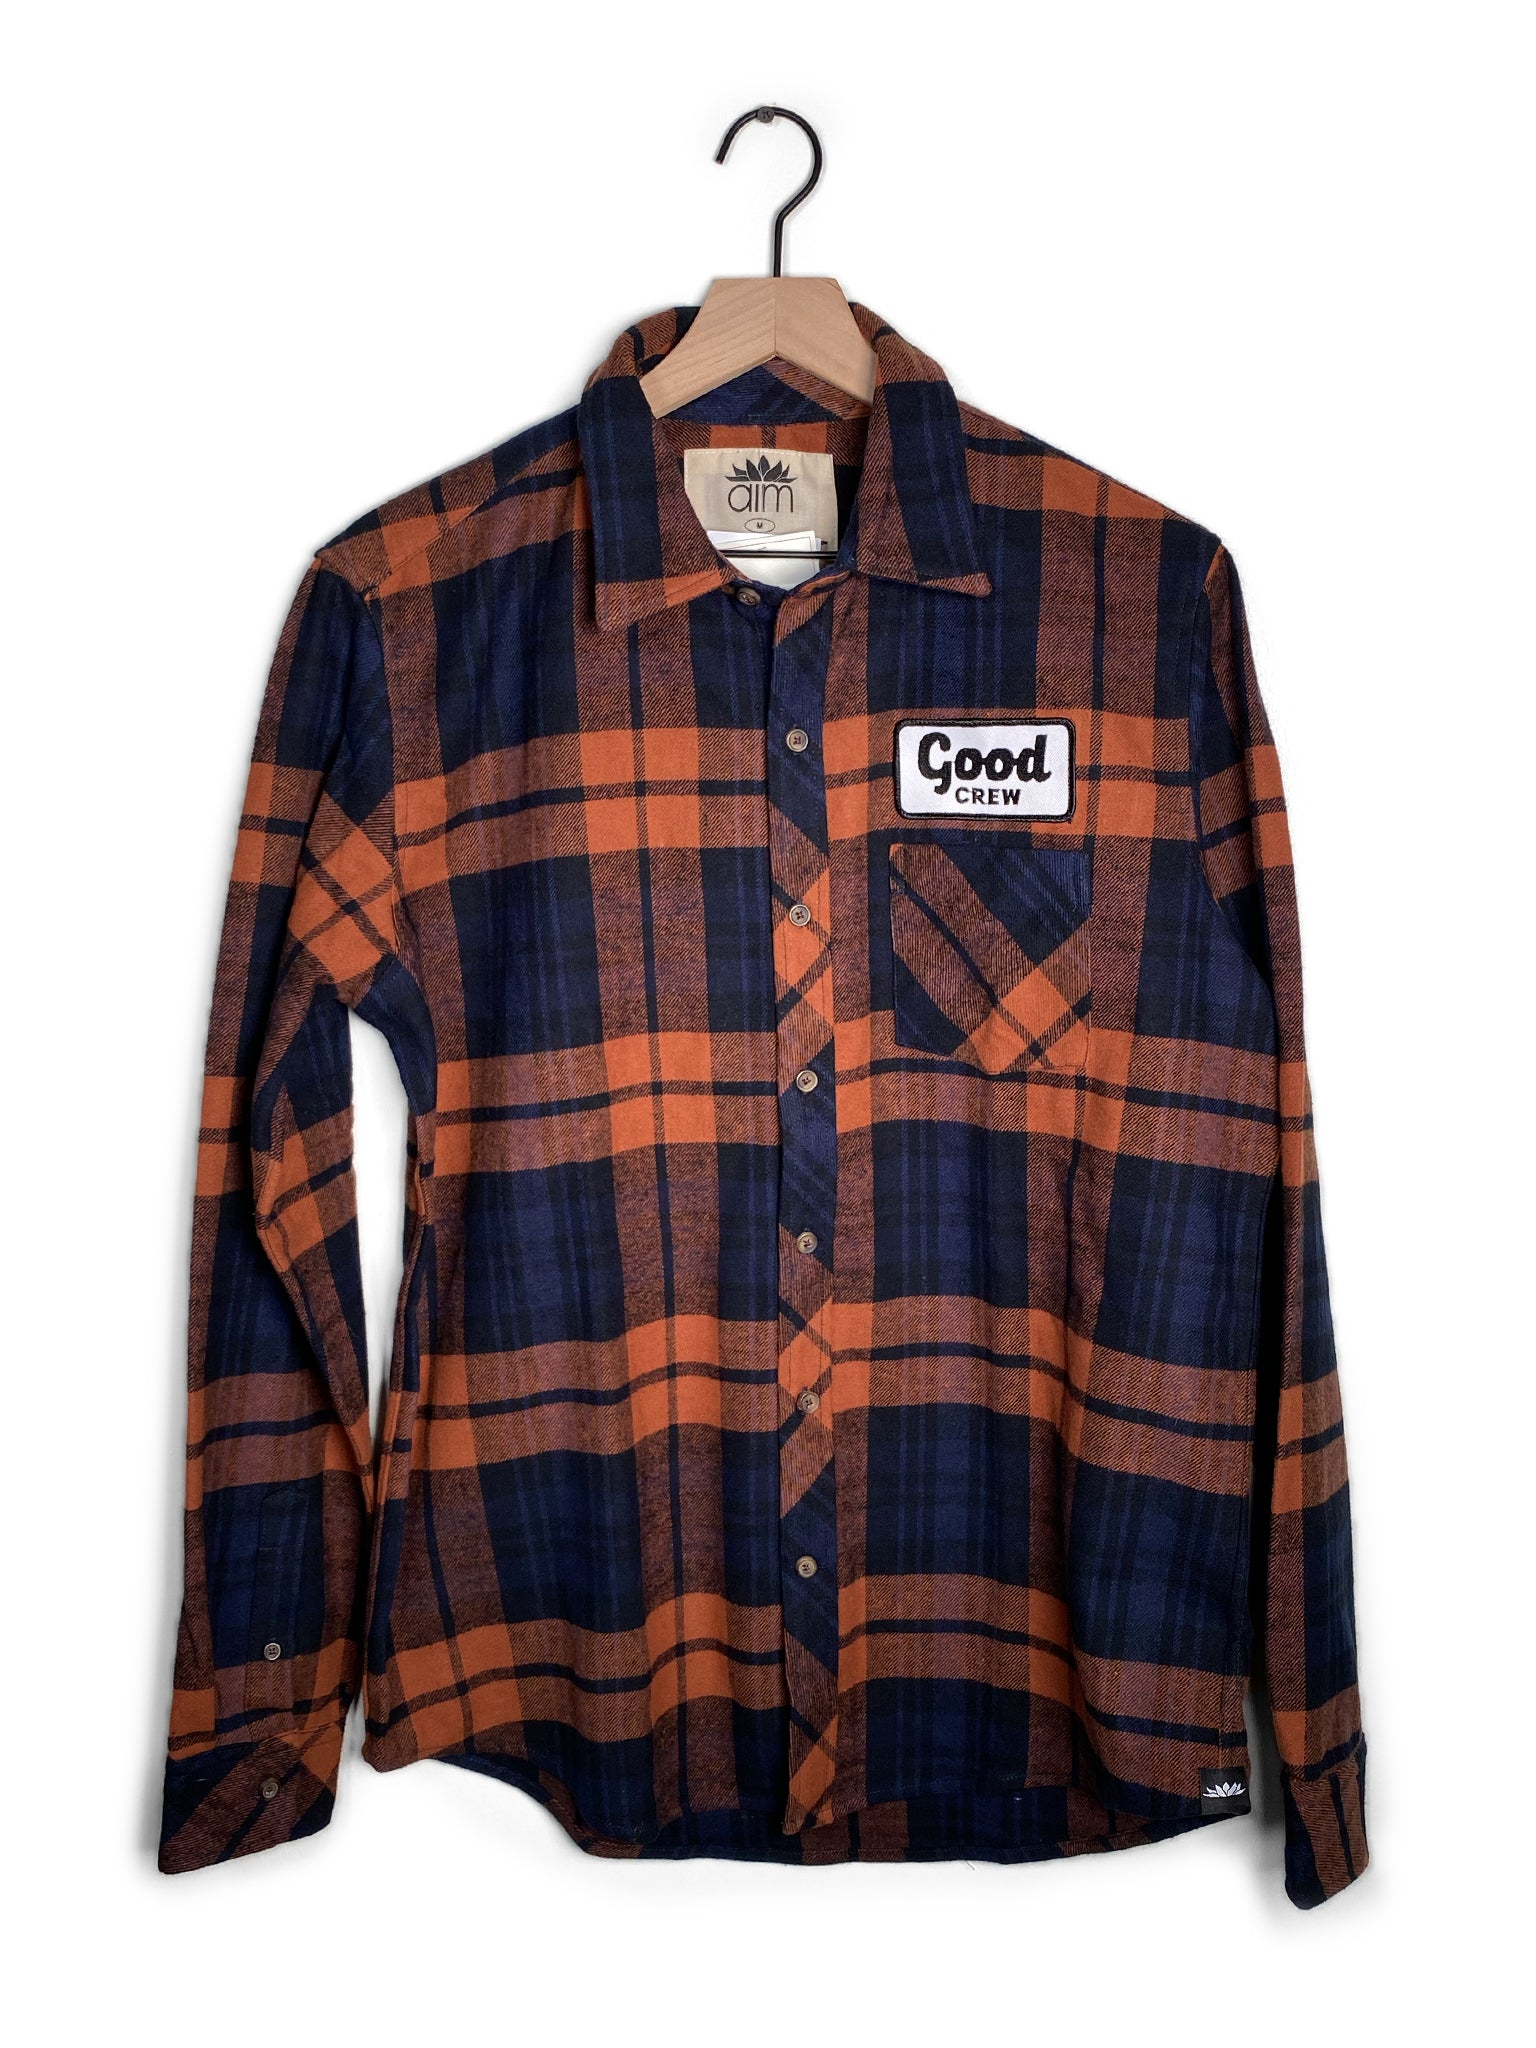 Good Crew Flannel